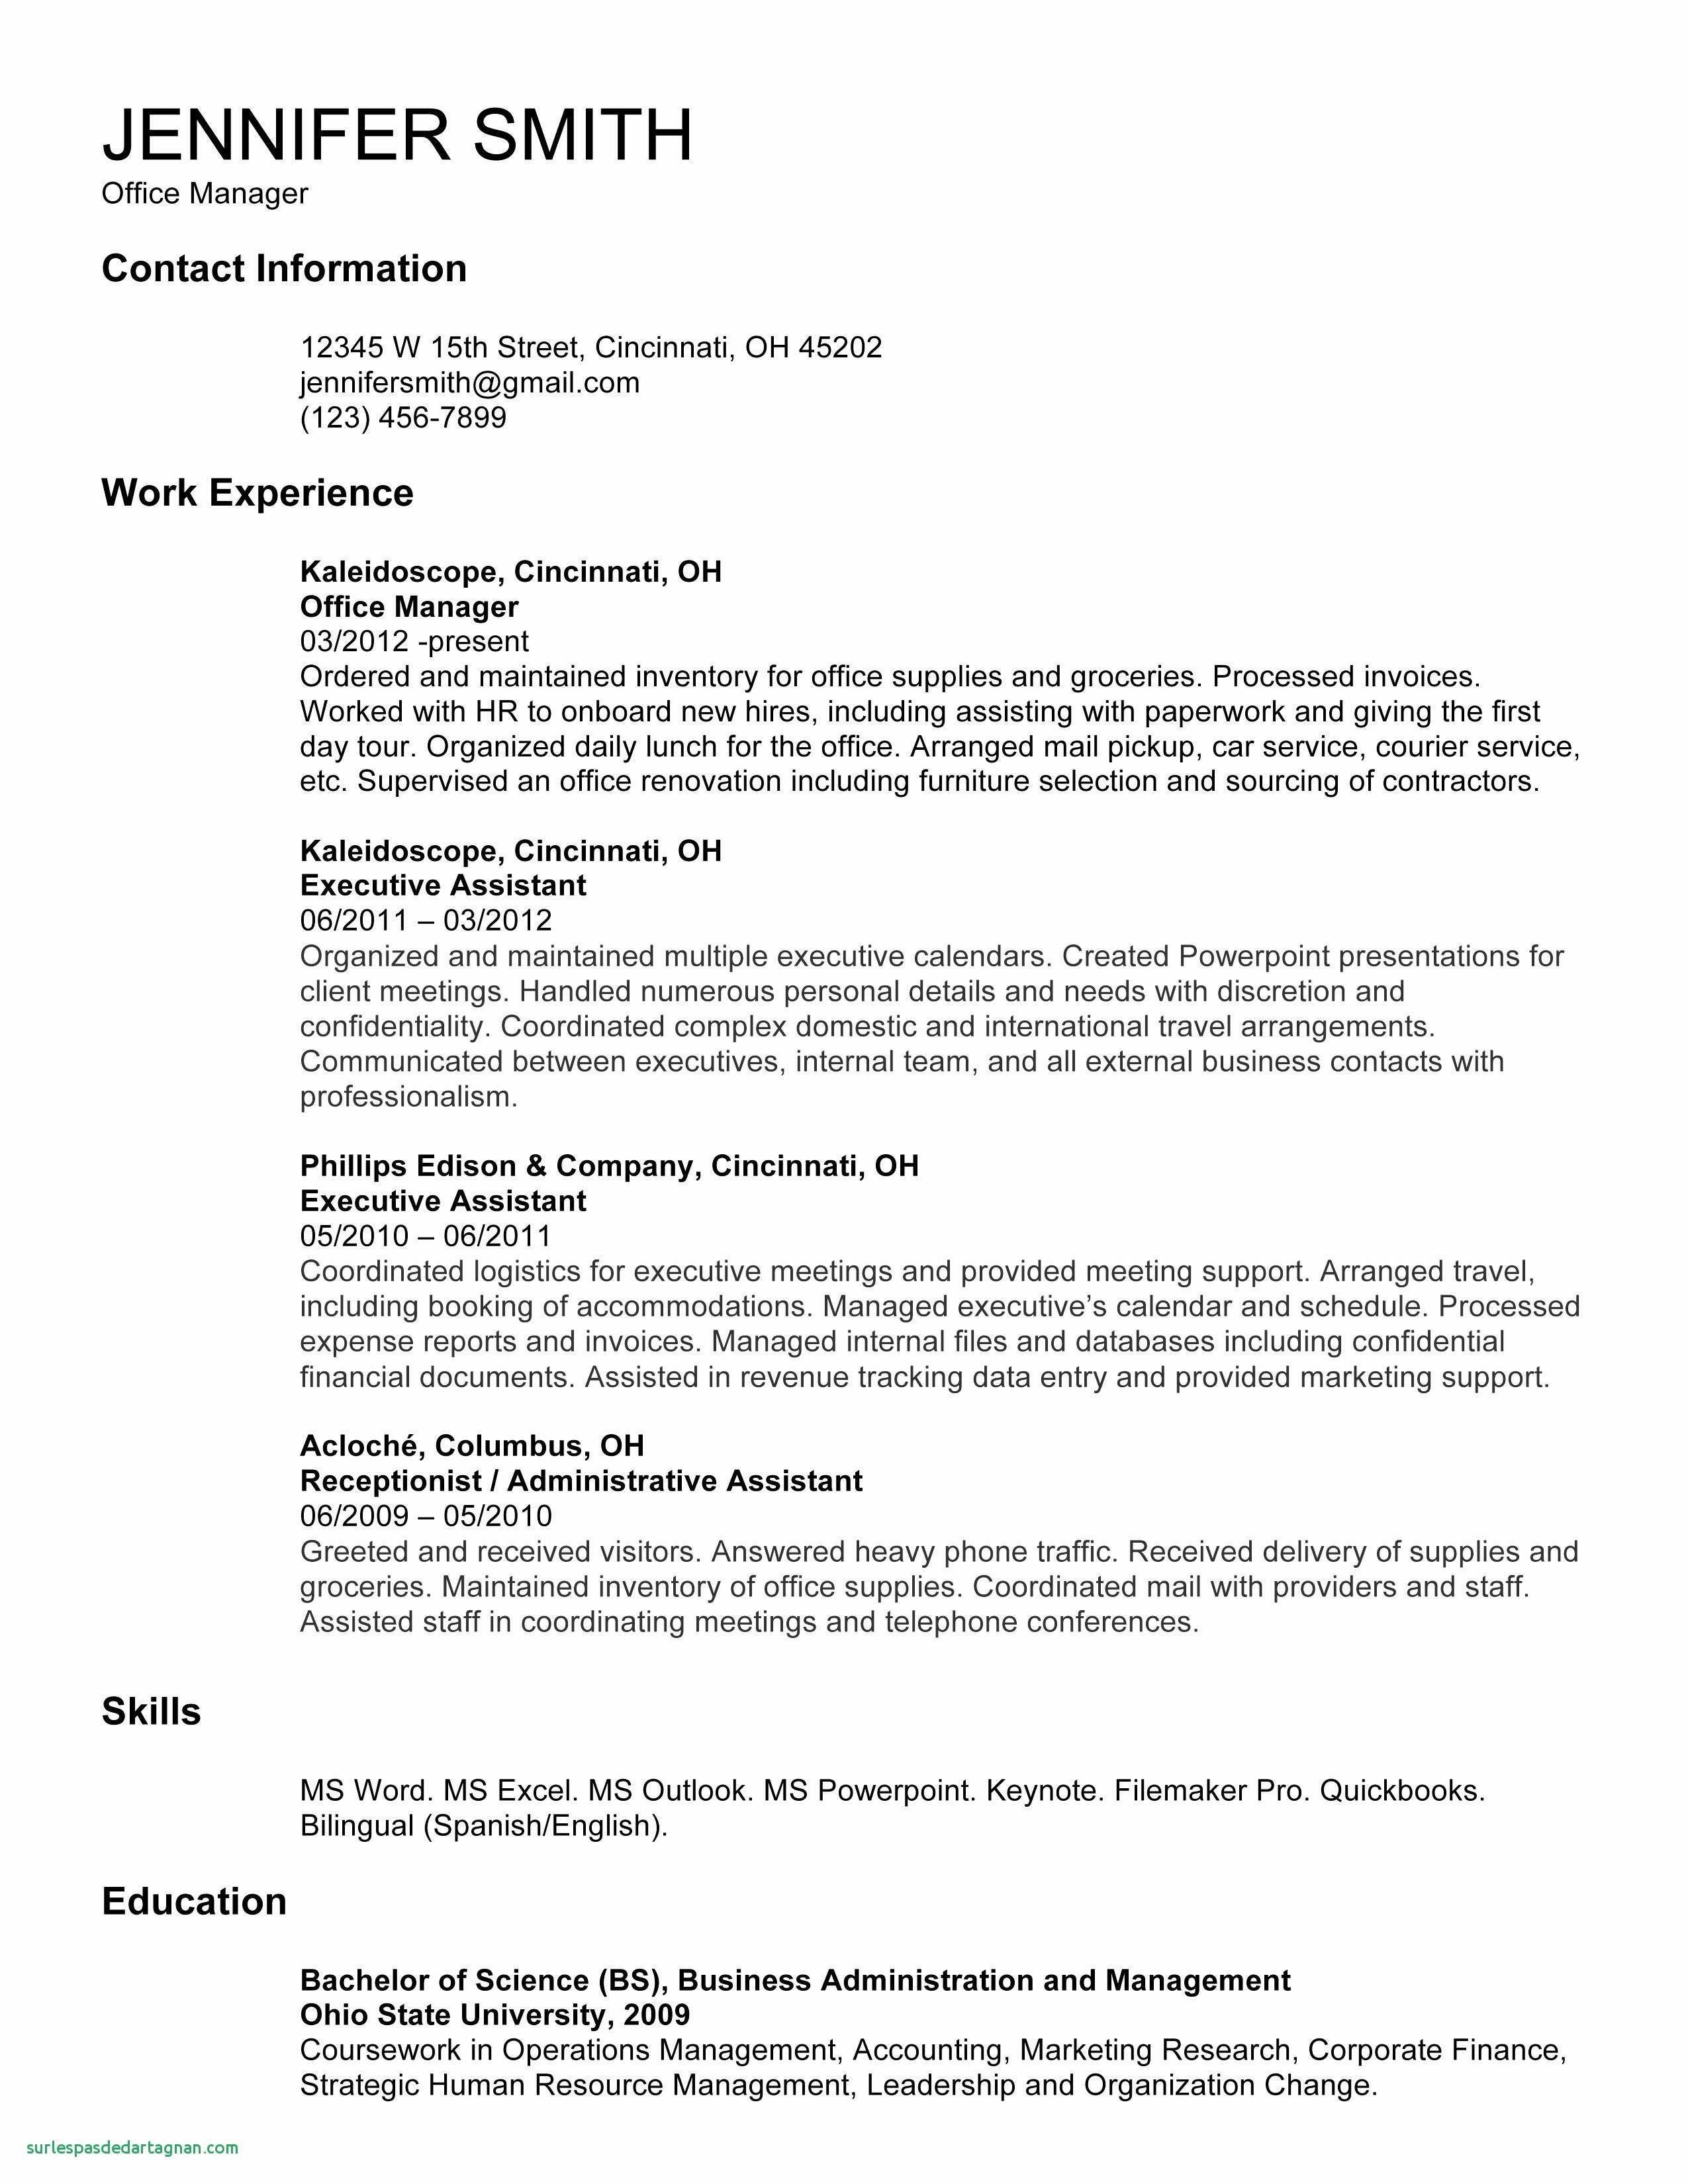 Financial Services Resume Template - Resume Template Download Free Unique ¢Ë†Å¡ Resume Template Download